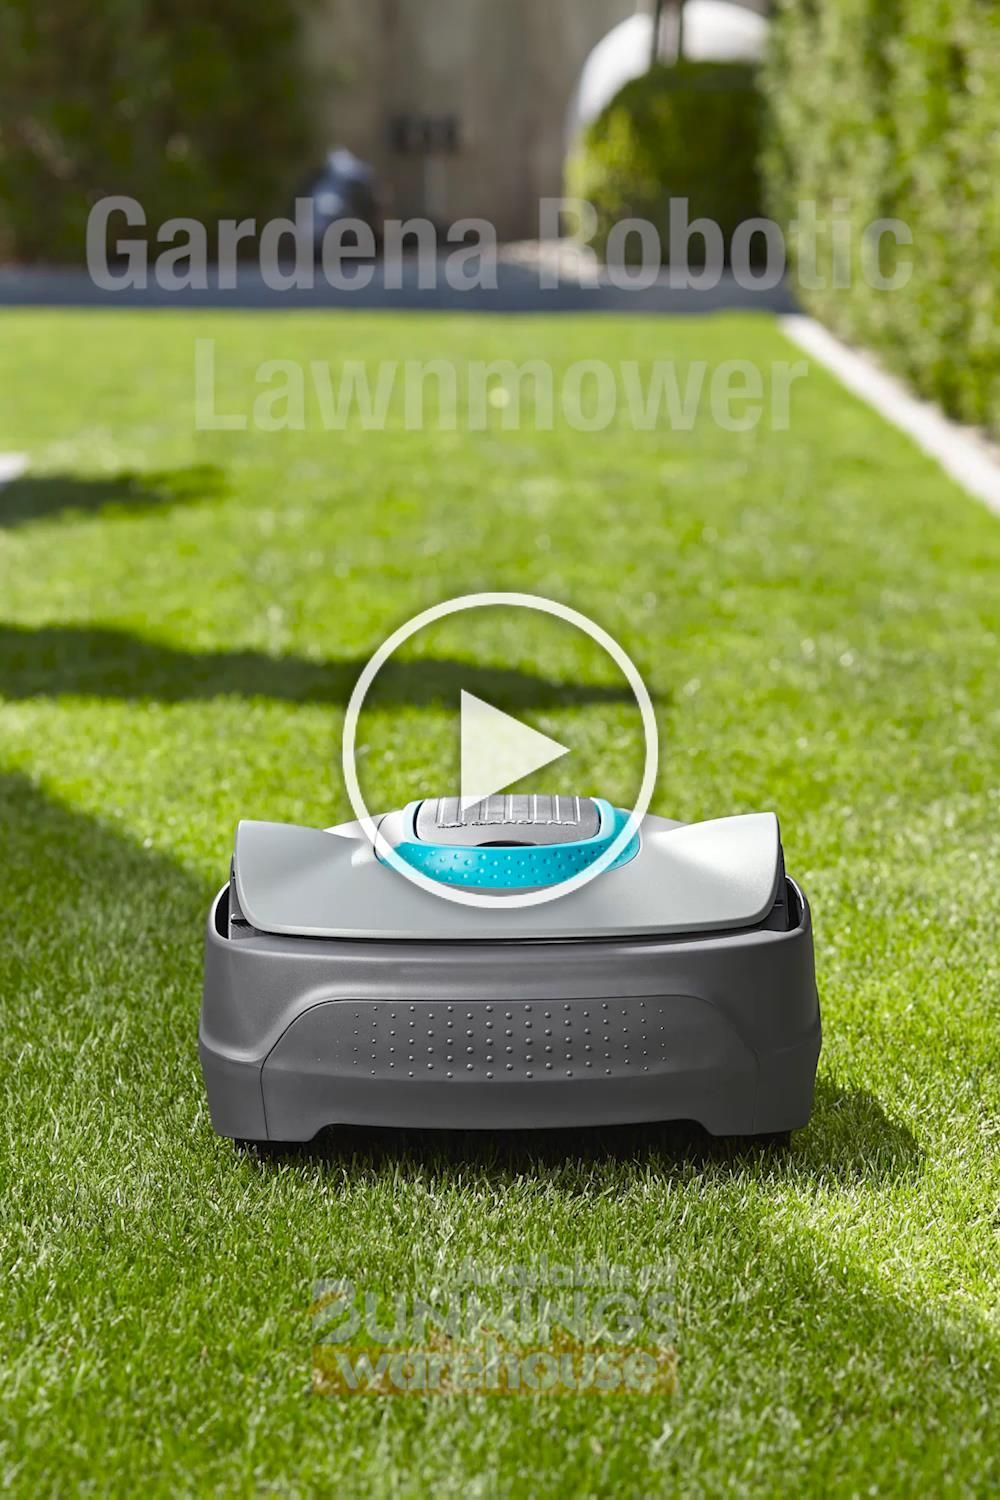 Effortless Lawn Care At Your Fingertips Mows Lawn Areas Up To 250 Square Metres Without Human Intervention Quiet And Environmentally Friendly In 2020 Lush Lawn